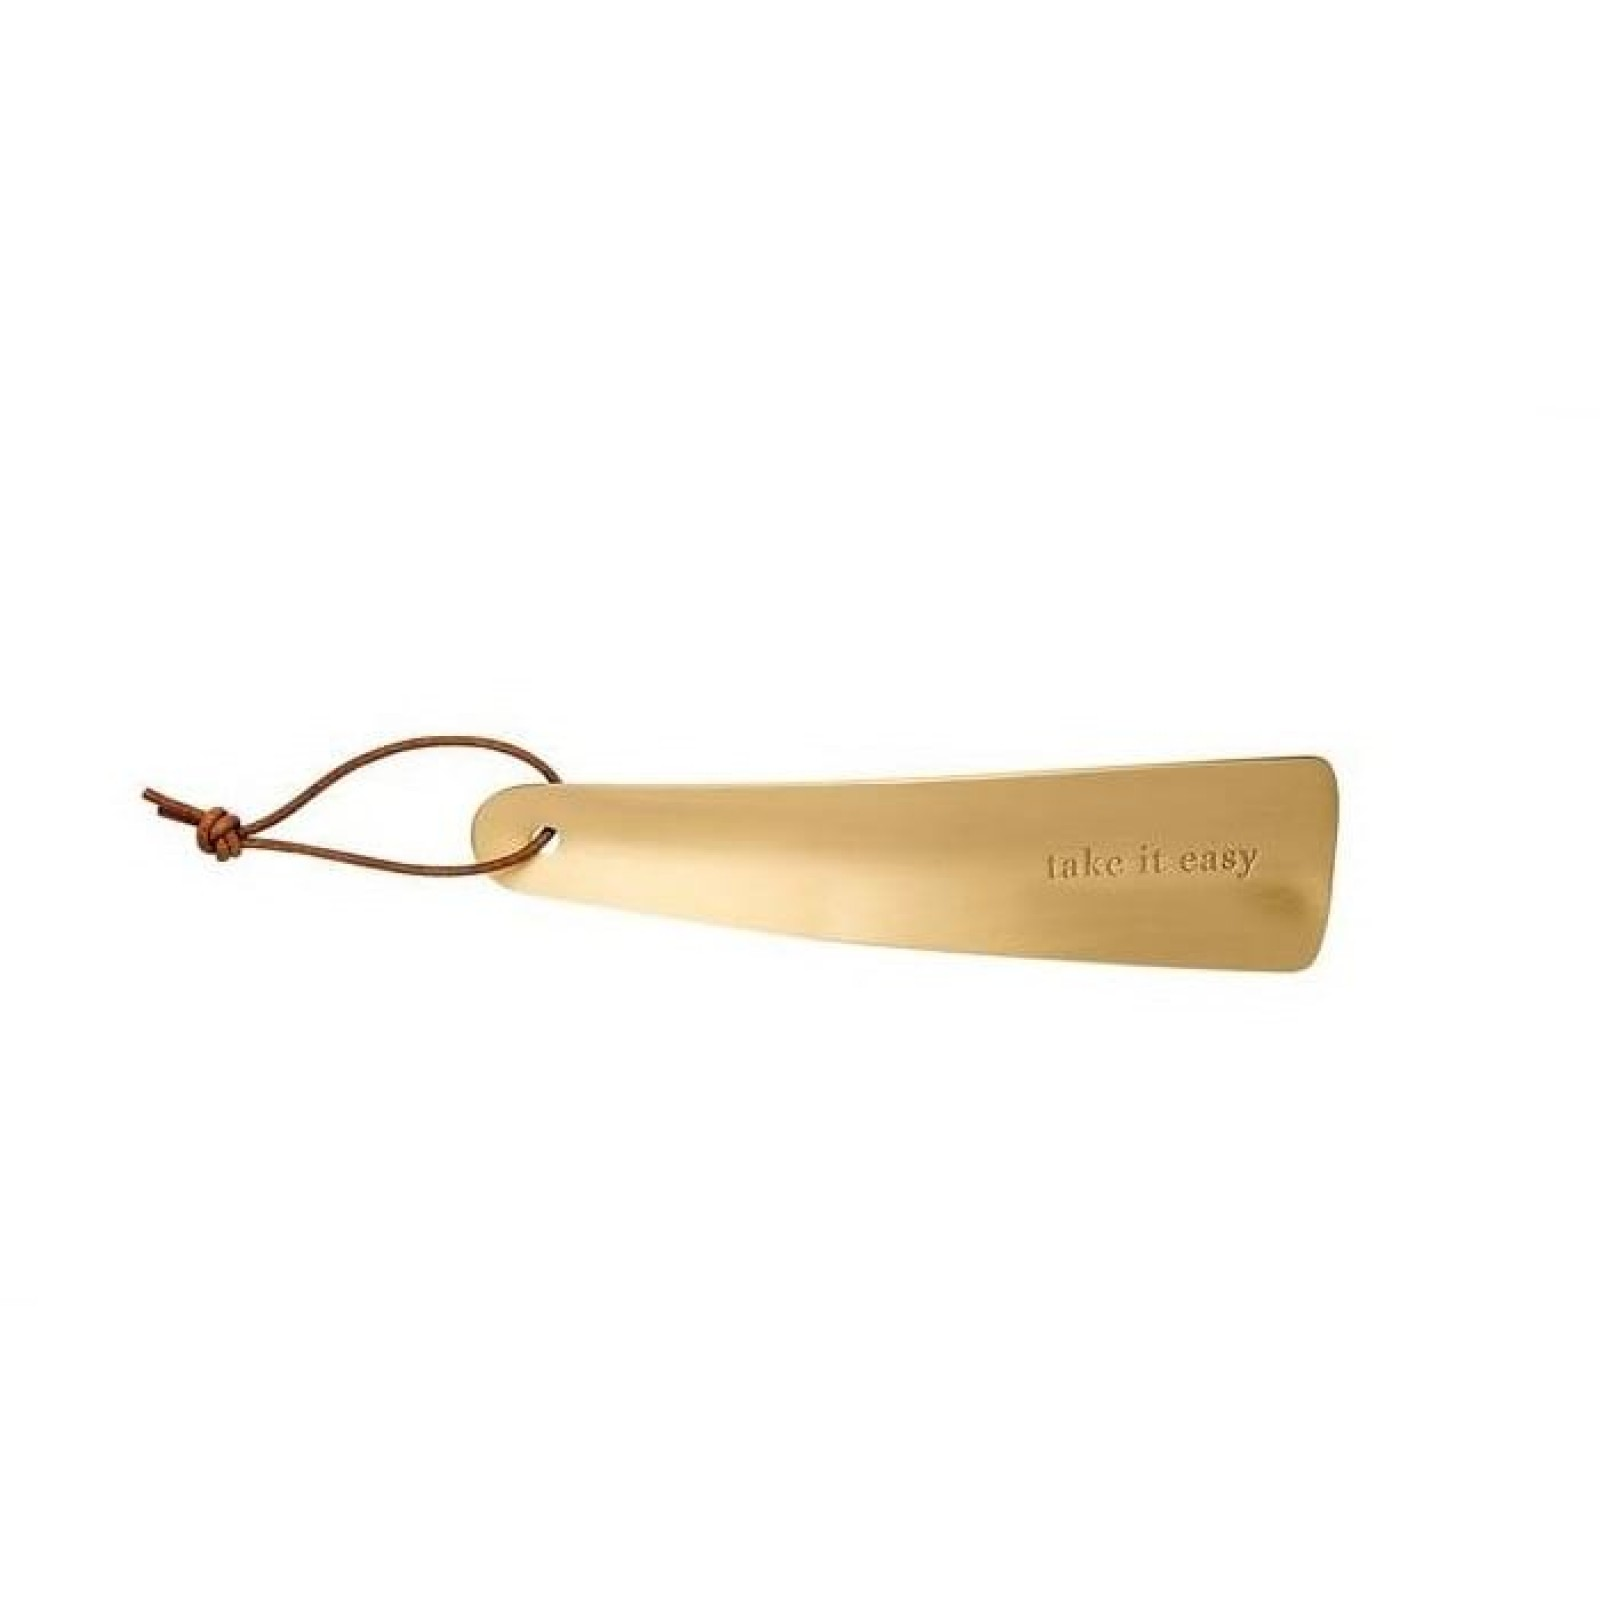 TAKE IT EASY ShoeHorn (Brass) - Raeder